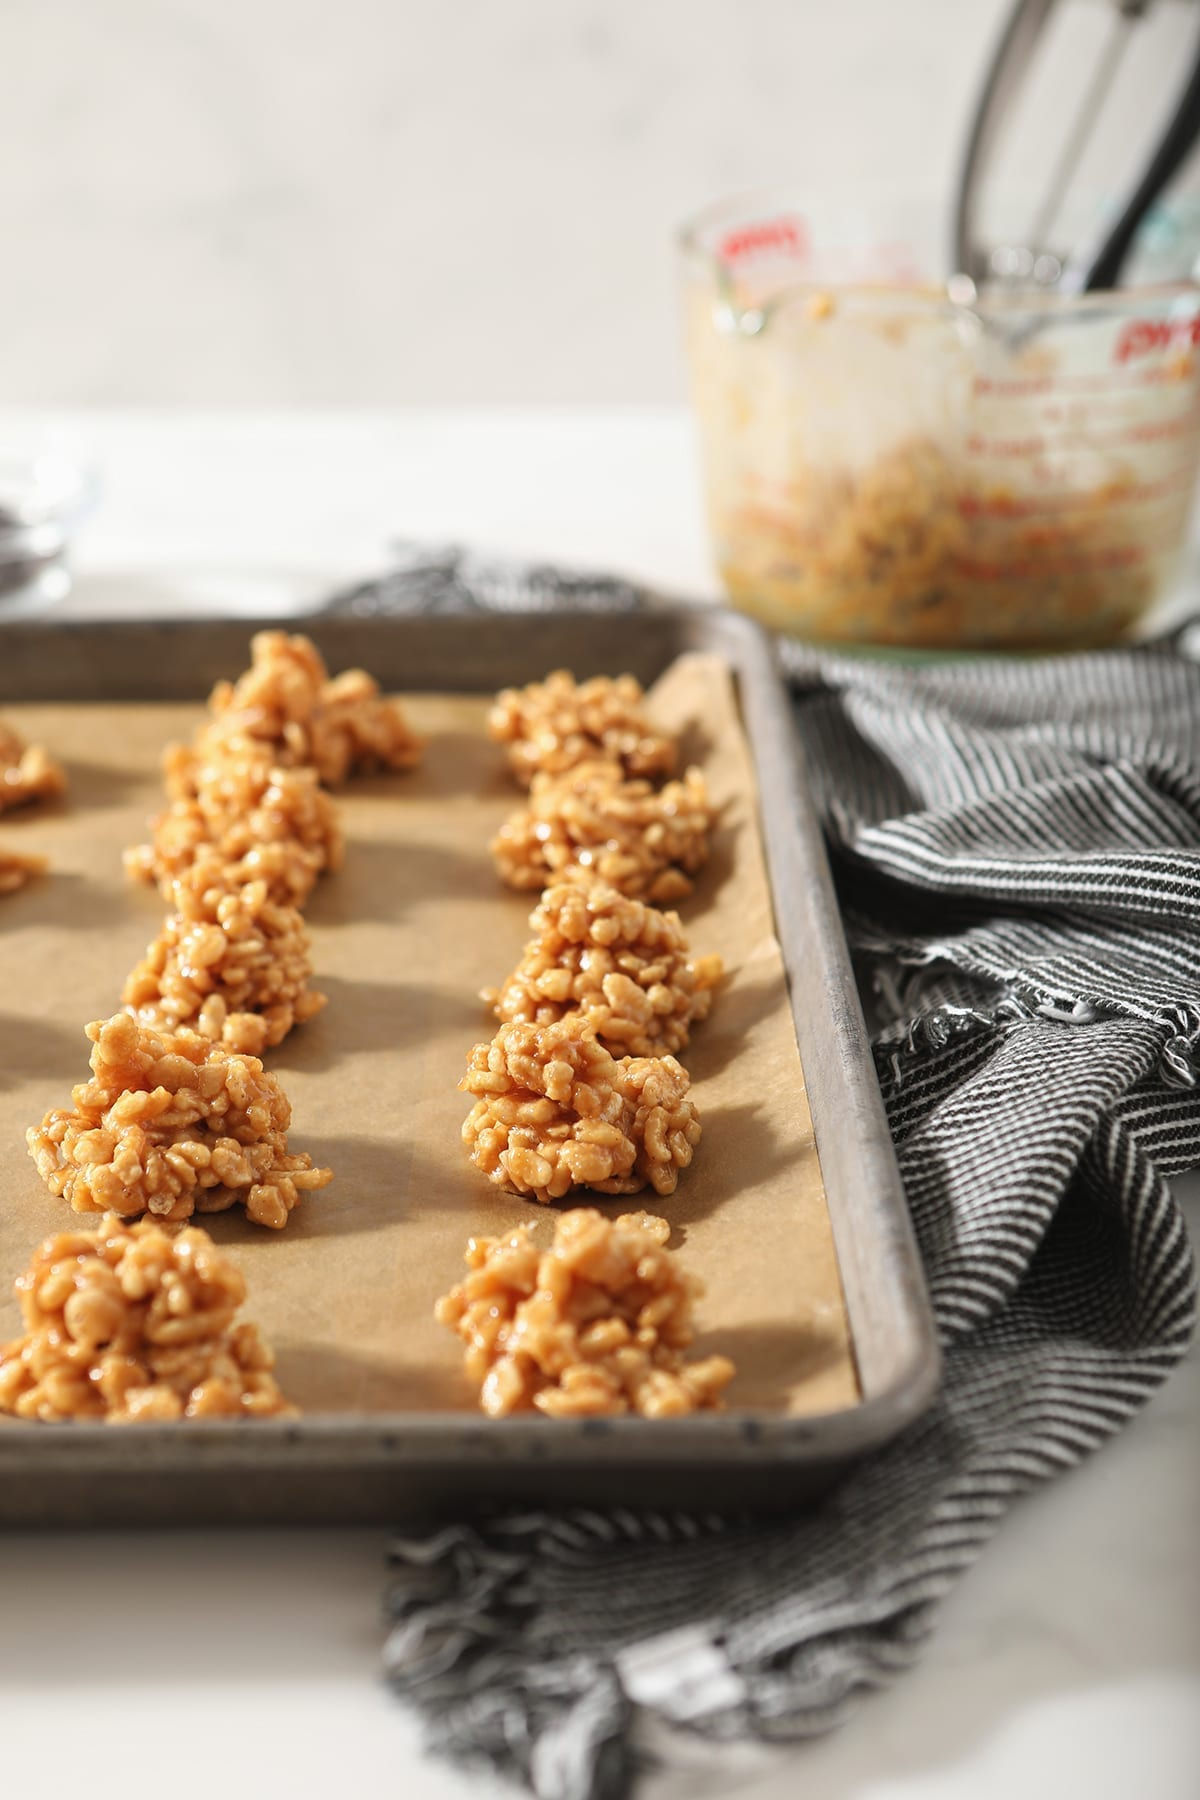 A lined baking sheet holds no bake peanut butter cookies on a marble surface with a grey and white towel